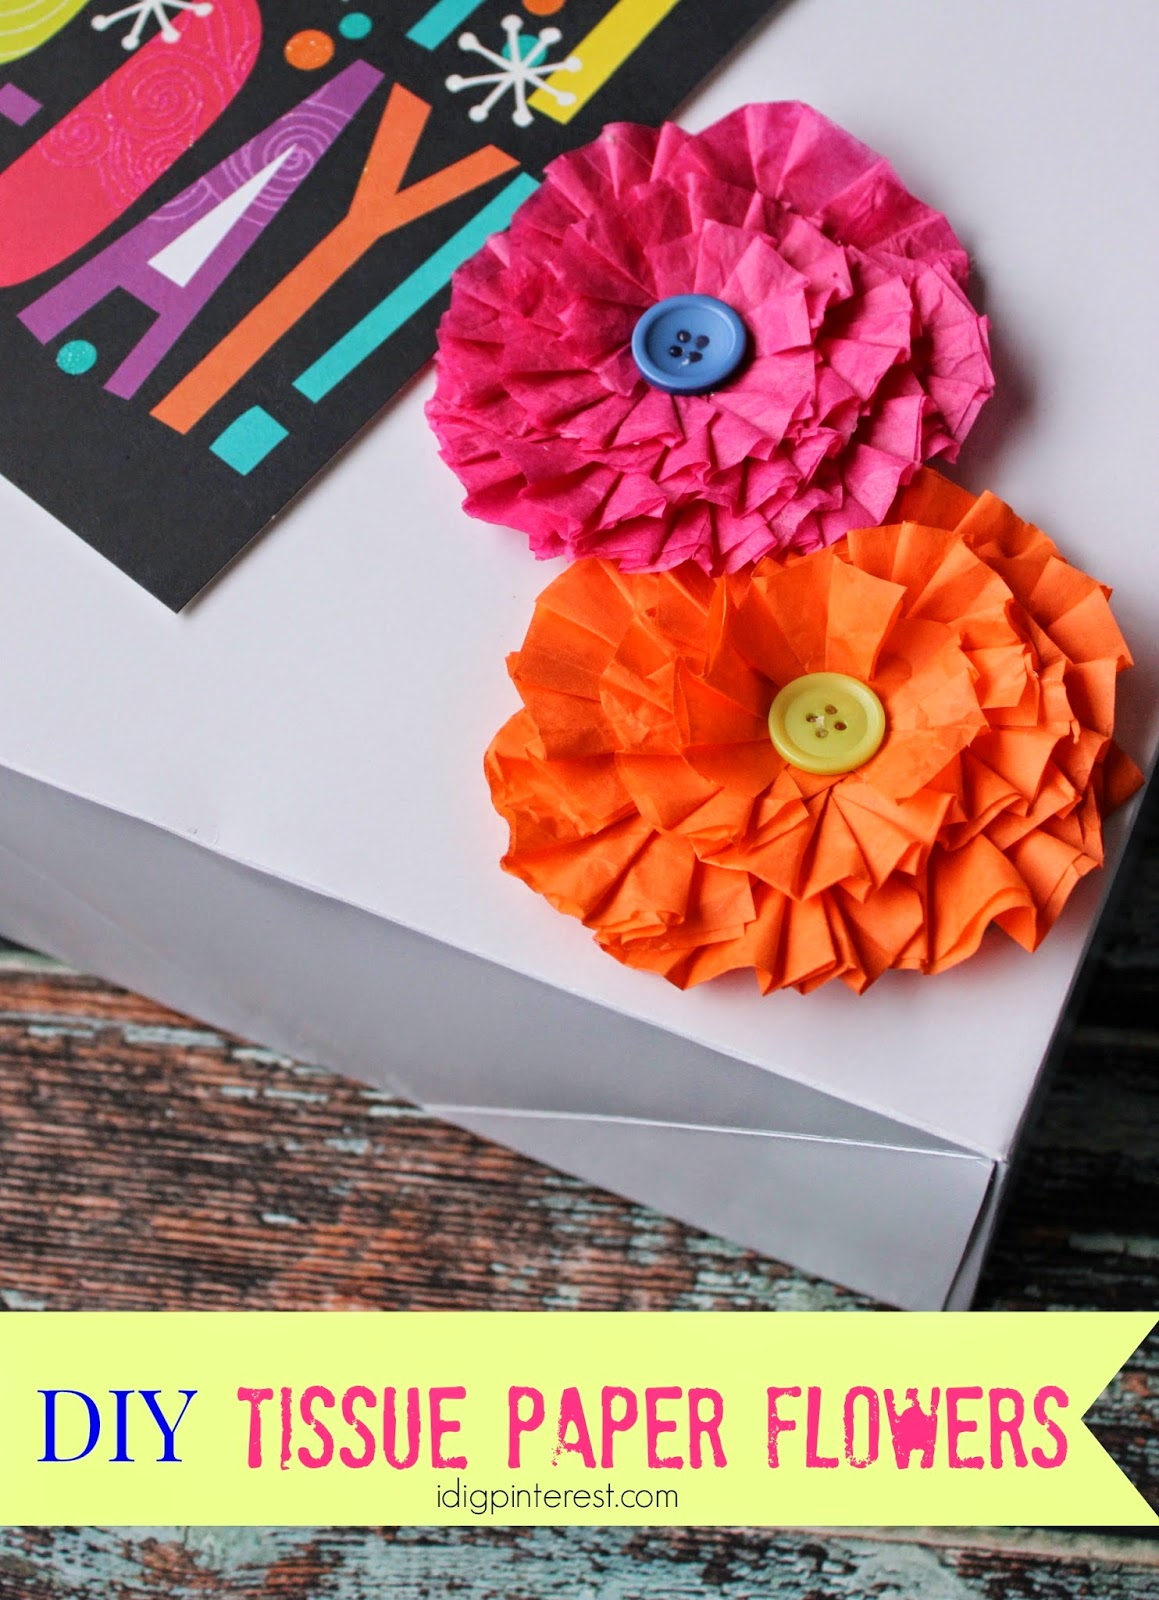 How to make decorative tissue paper flowers i dig pinterest how to make decorative tissue paper flowers mightylinksfo